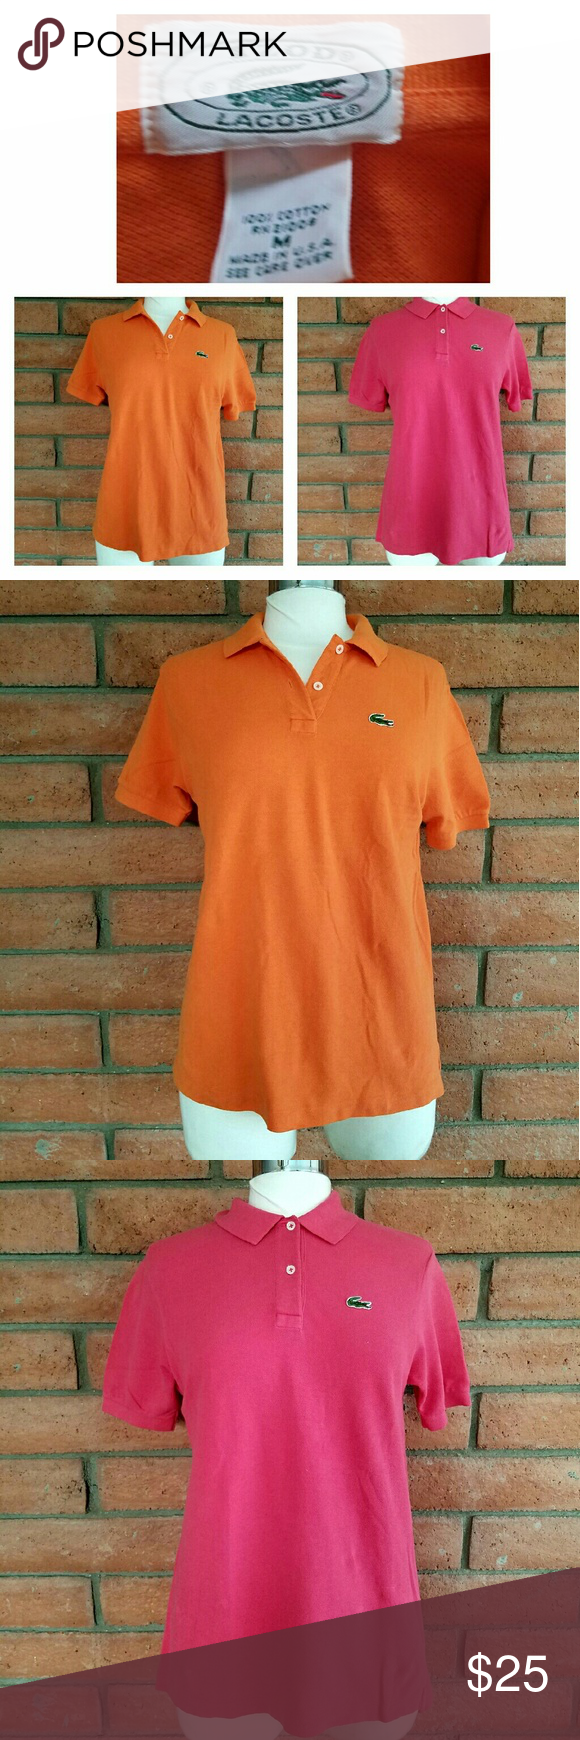 Lacoste Polo shirt 2 bundle of lacoste Polo shirt. In good condition Lacoste Tops